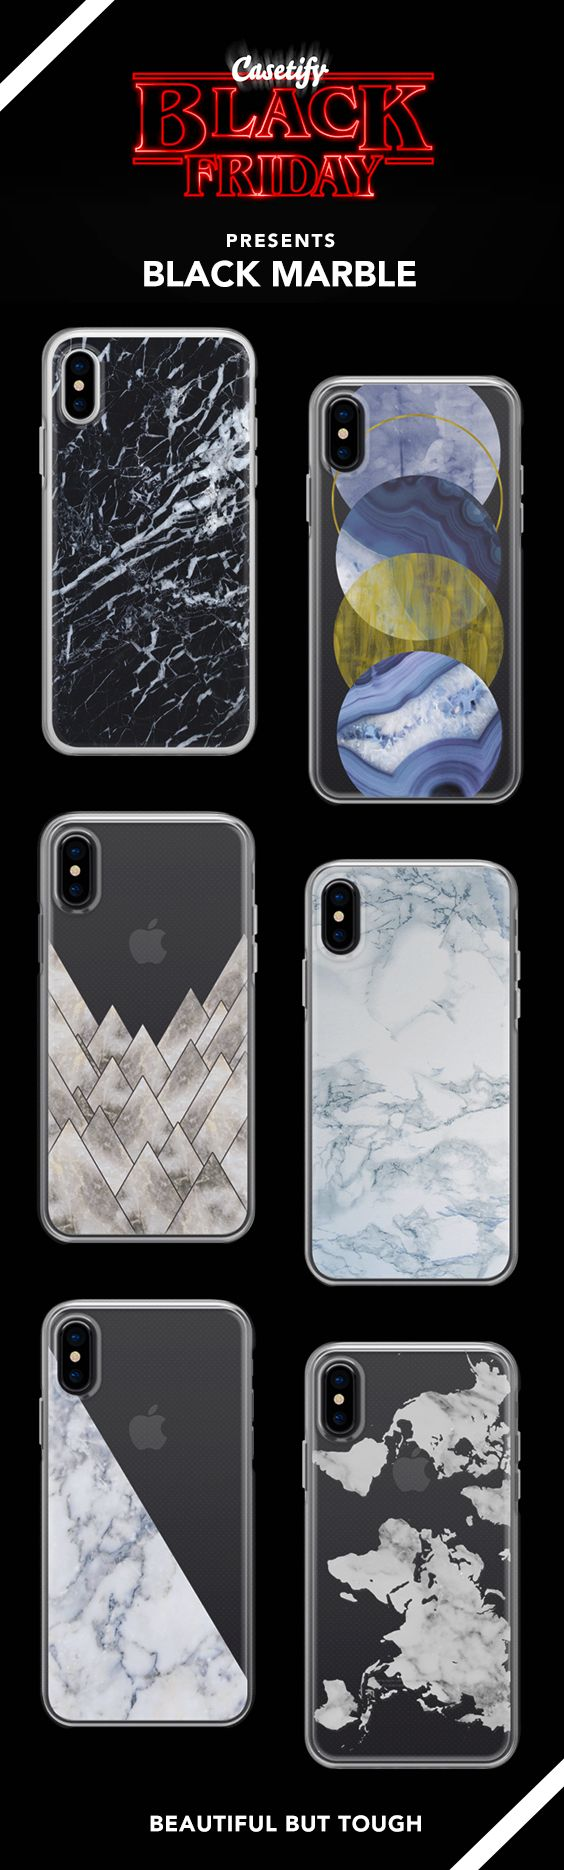 Black Friday Special:  Most Wanted Marble iPhone X, iPhone 8, iPhone 8 plus, iPhone 7, iPhone 7 Plus case. - Shop them here ☝️☝️☝️ BEAUTIFUL BUT TOUGH ✨  - fashion, illustrators, marble, illustrations, fashionista